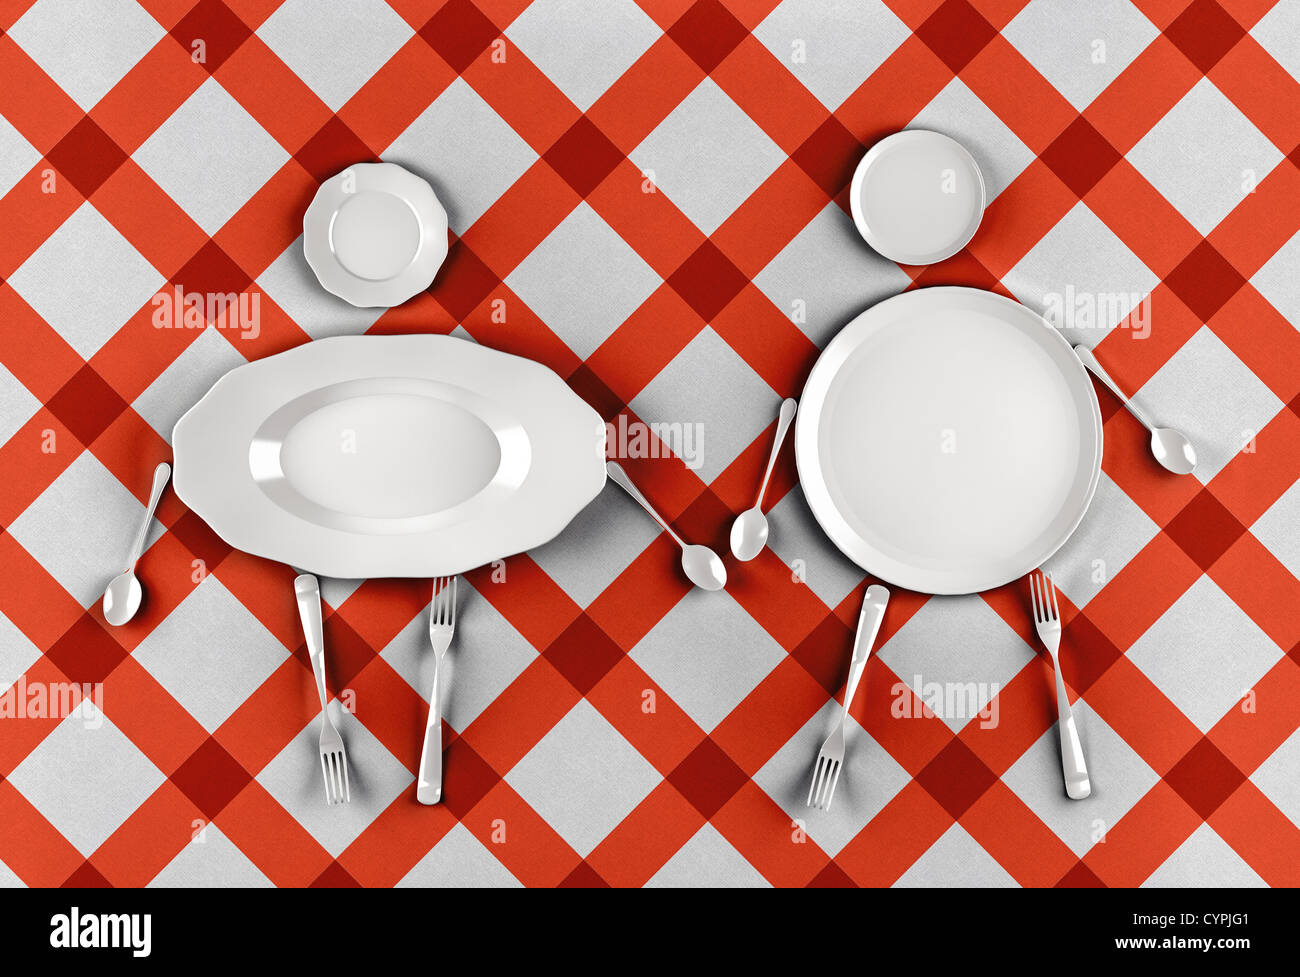 figures of men and women,  stylized by dishes on a pattern background - Stock Image